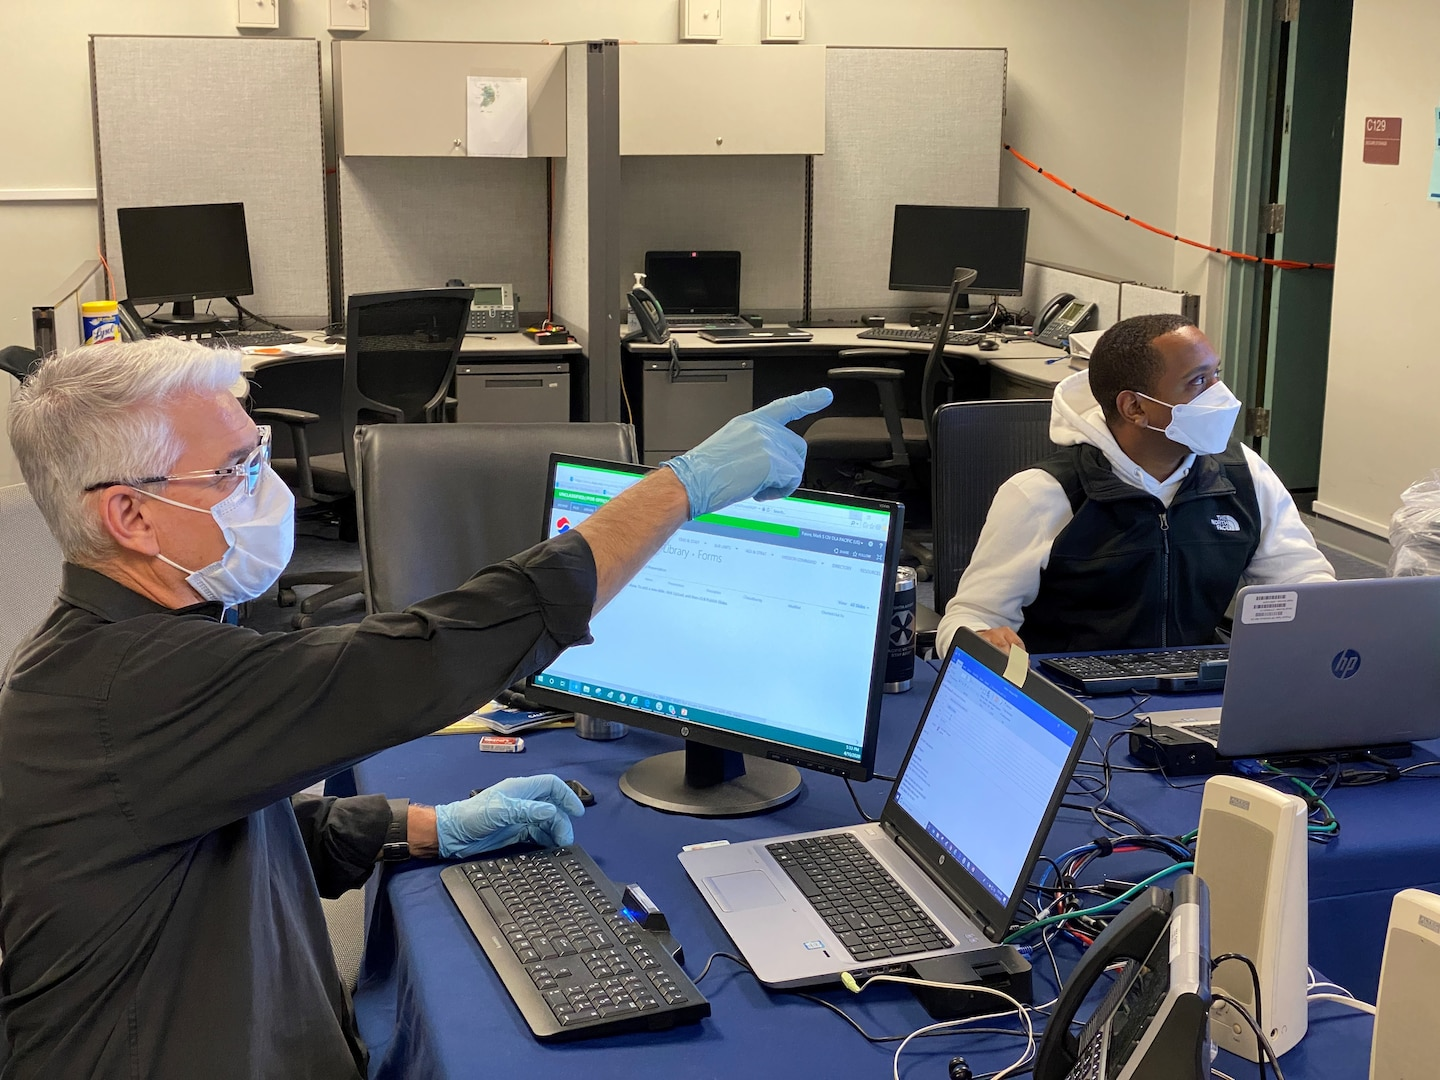 A Korean man sitting at a computer and wearing a mask points to an unidentified object as a black man wearing a mask looks on.